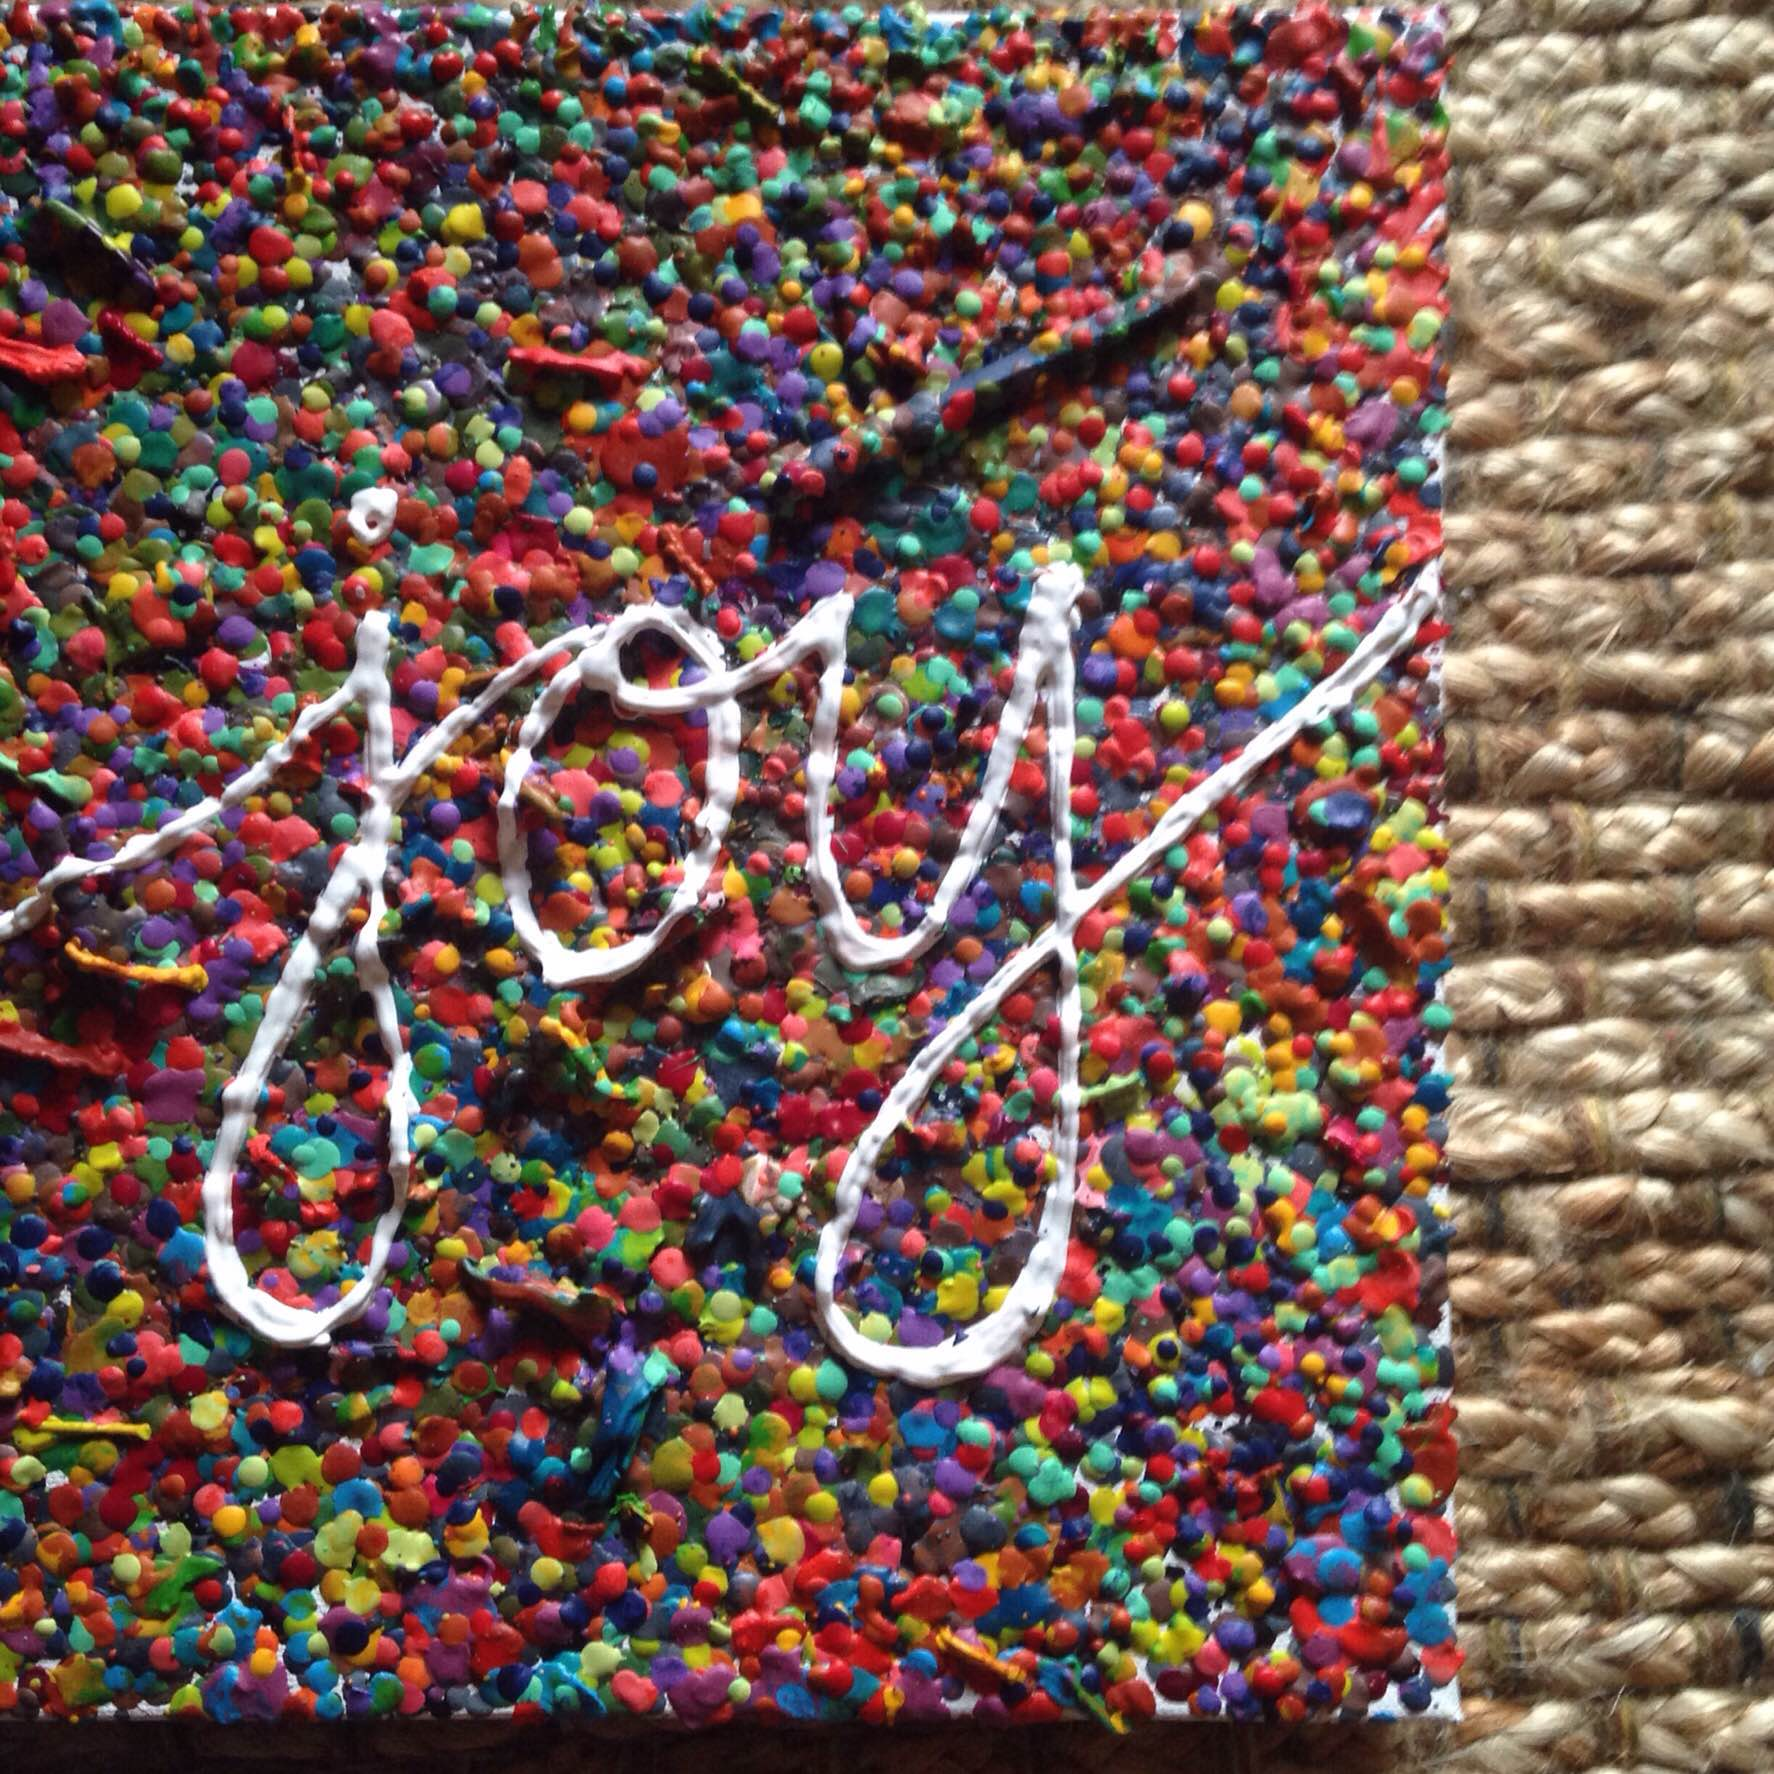 'Joy' by Hannah Poschel, 2015, 12x12, Melted Crayon on Canvas